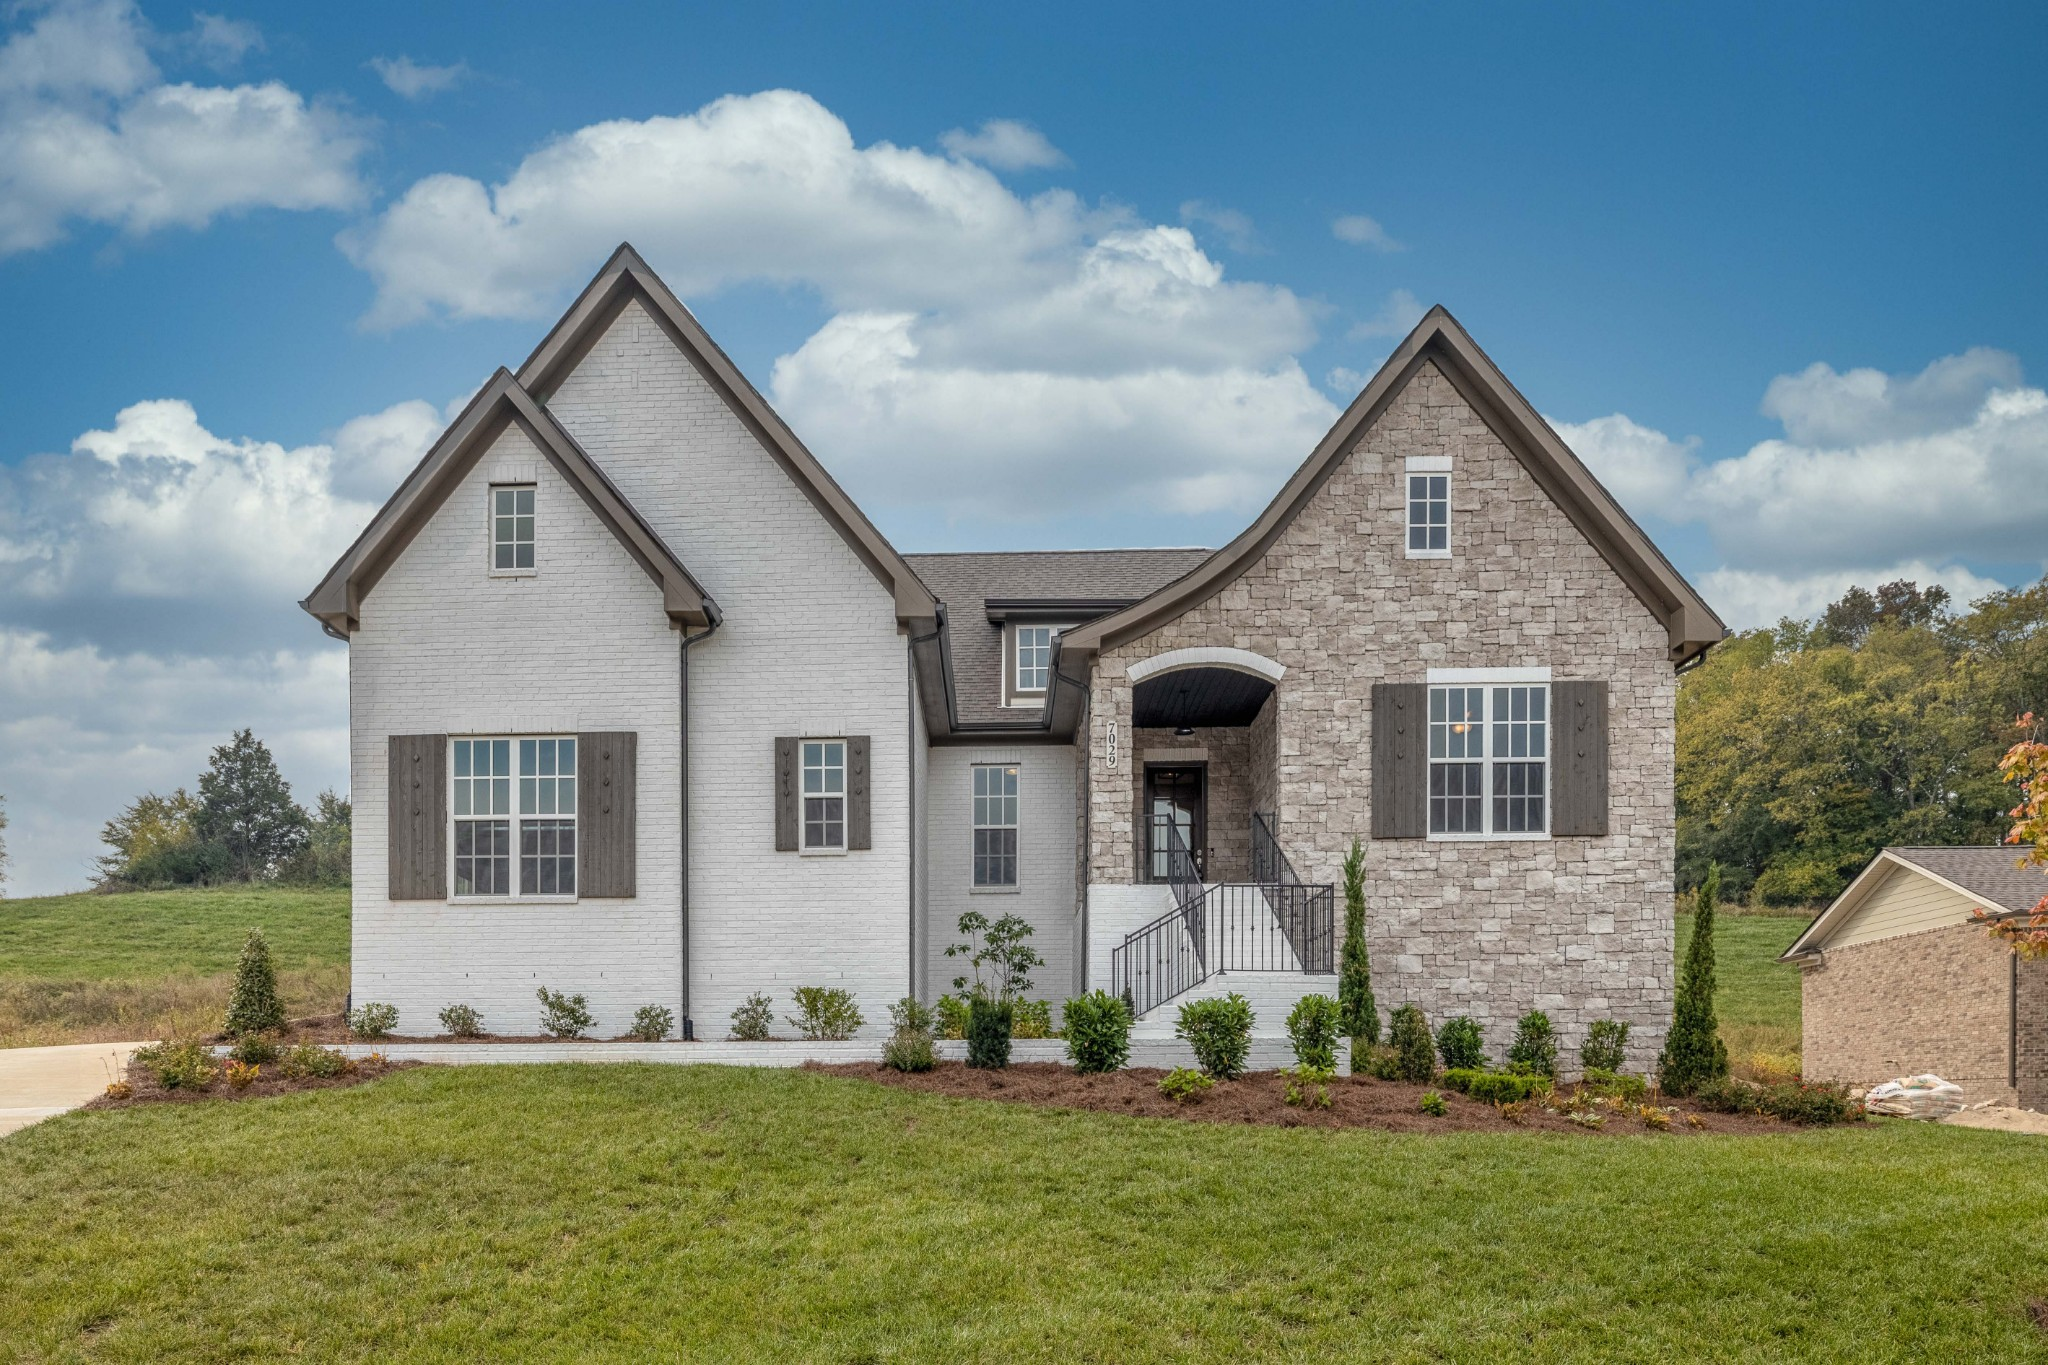 7029 Vineyard Valley Dr (108) Property Photo - College Grove, TN real estate listing